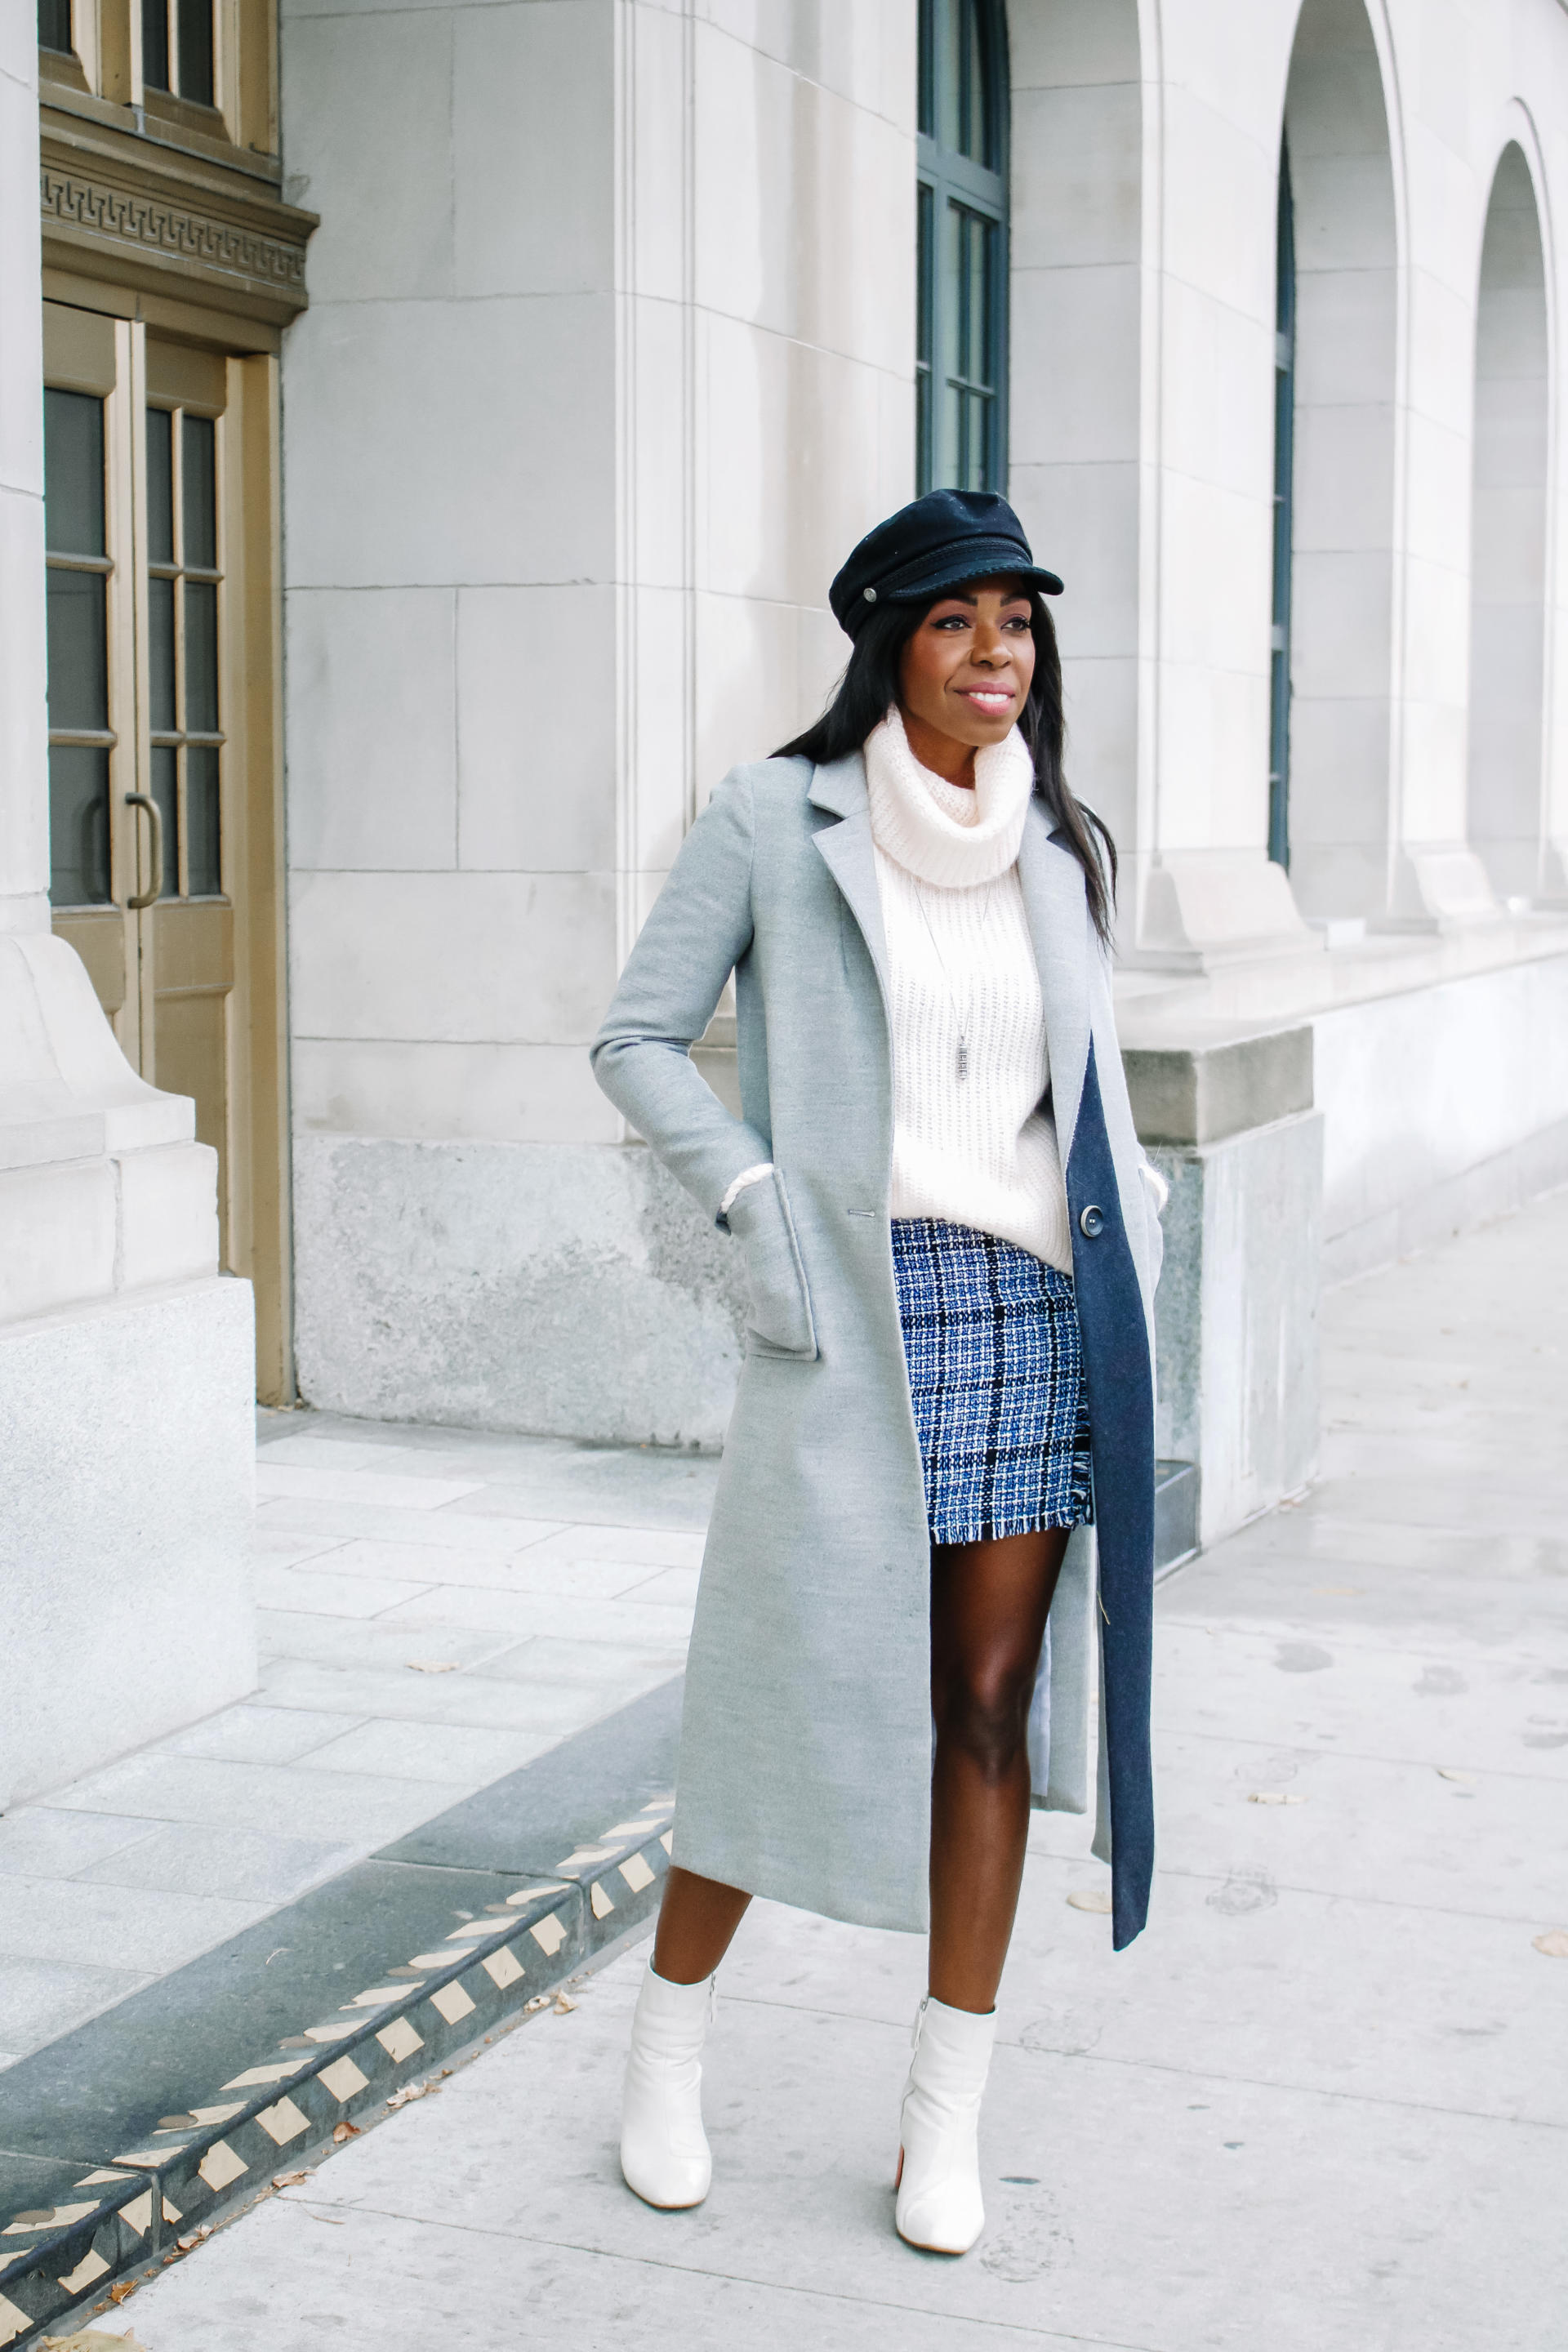 4 Happy Little Things I'm Enjoying Right Now | Style Domination by Dominique Baker